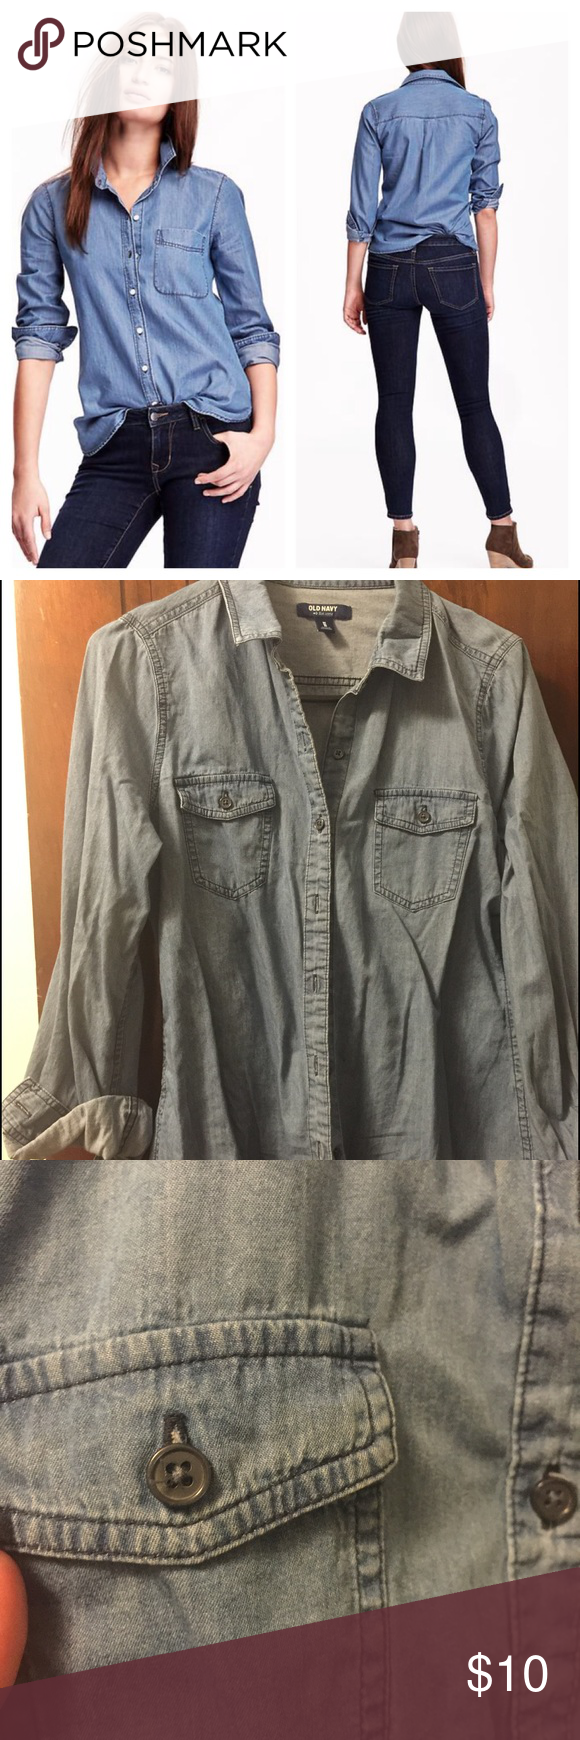 Old Navy Chambray shirt Blue jean.  Wore 3-4 times. Old Navy Tops Button Down Shirts